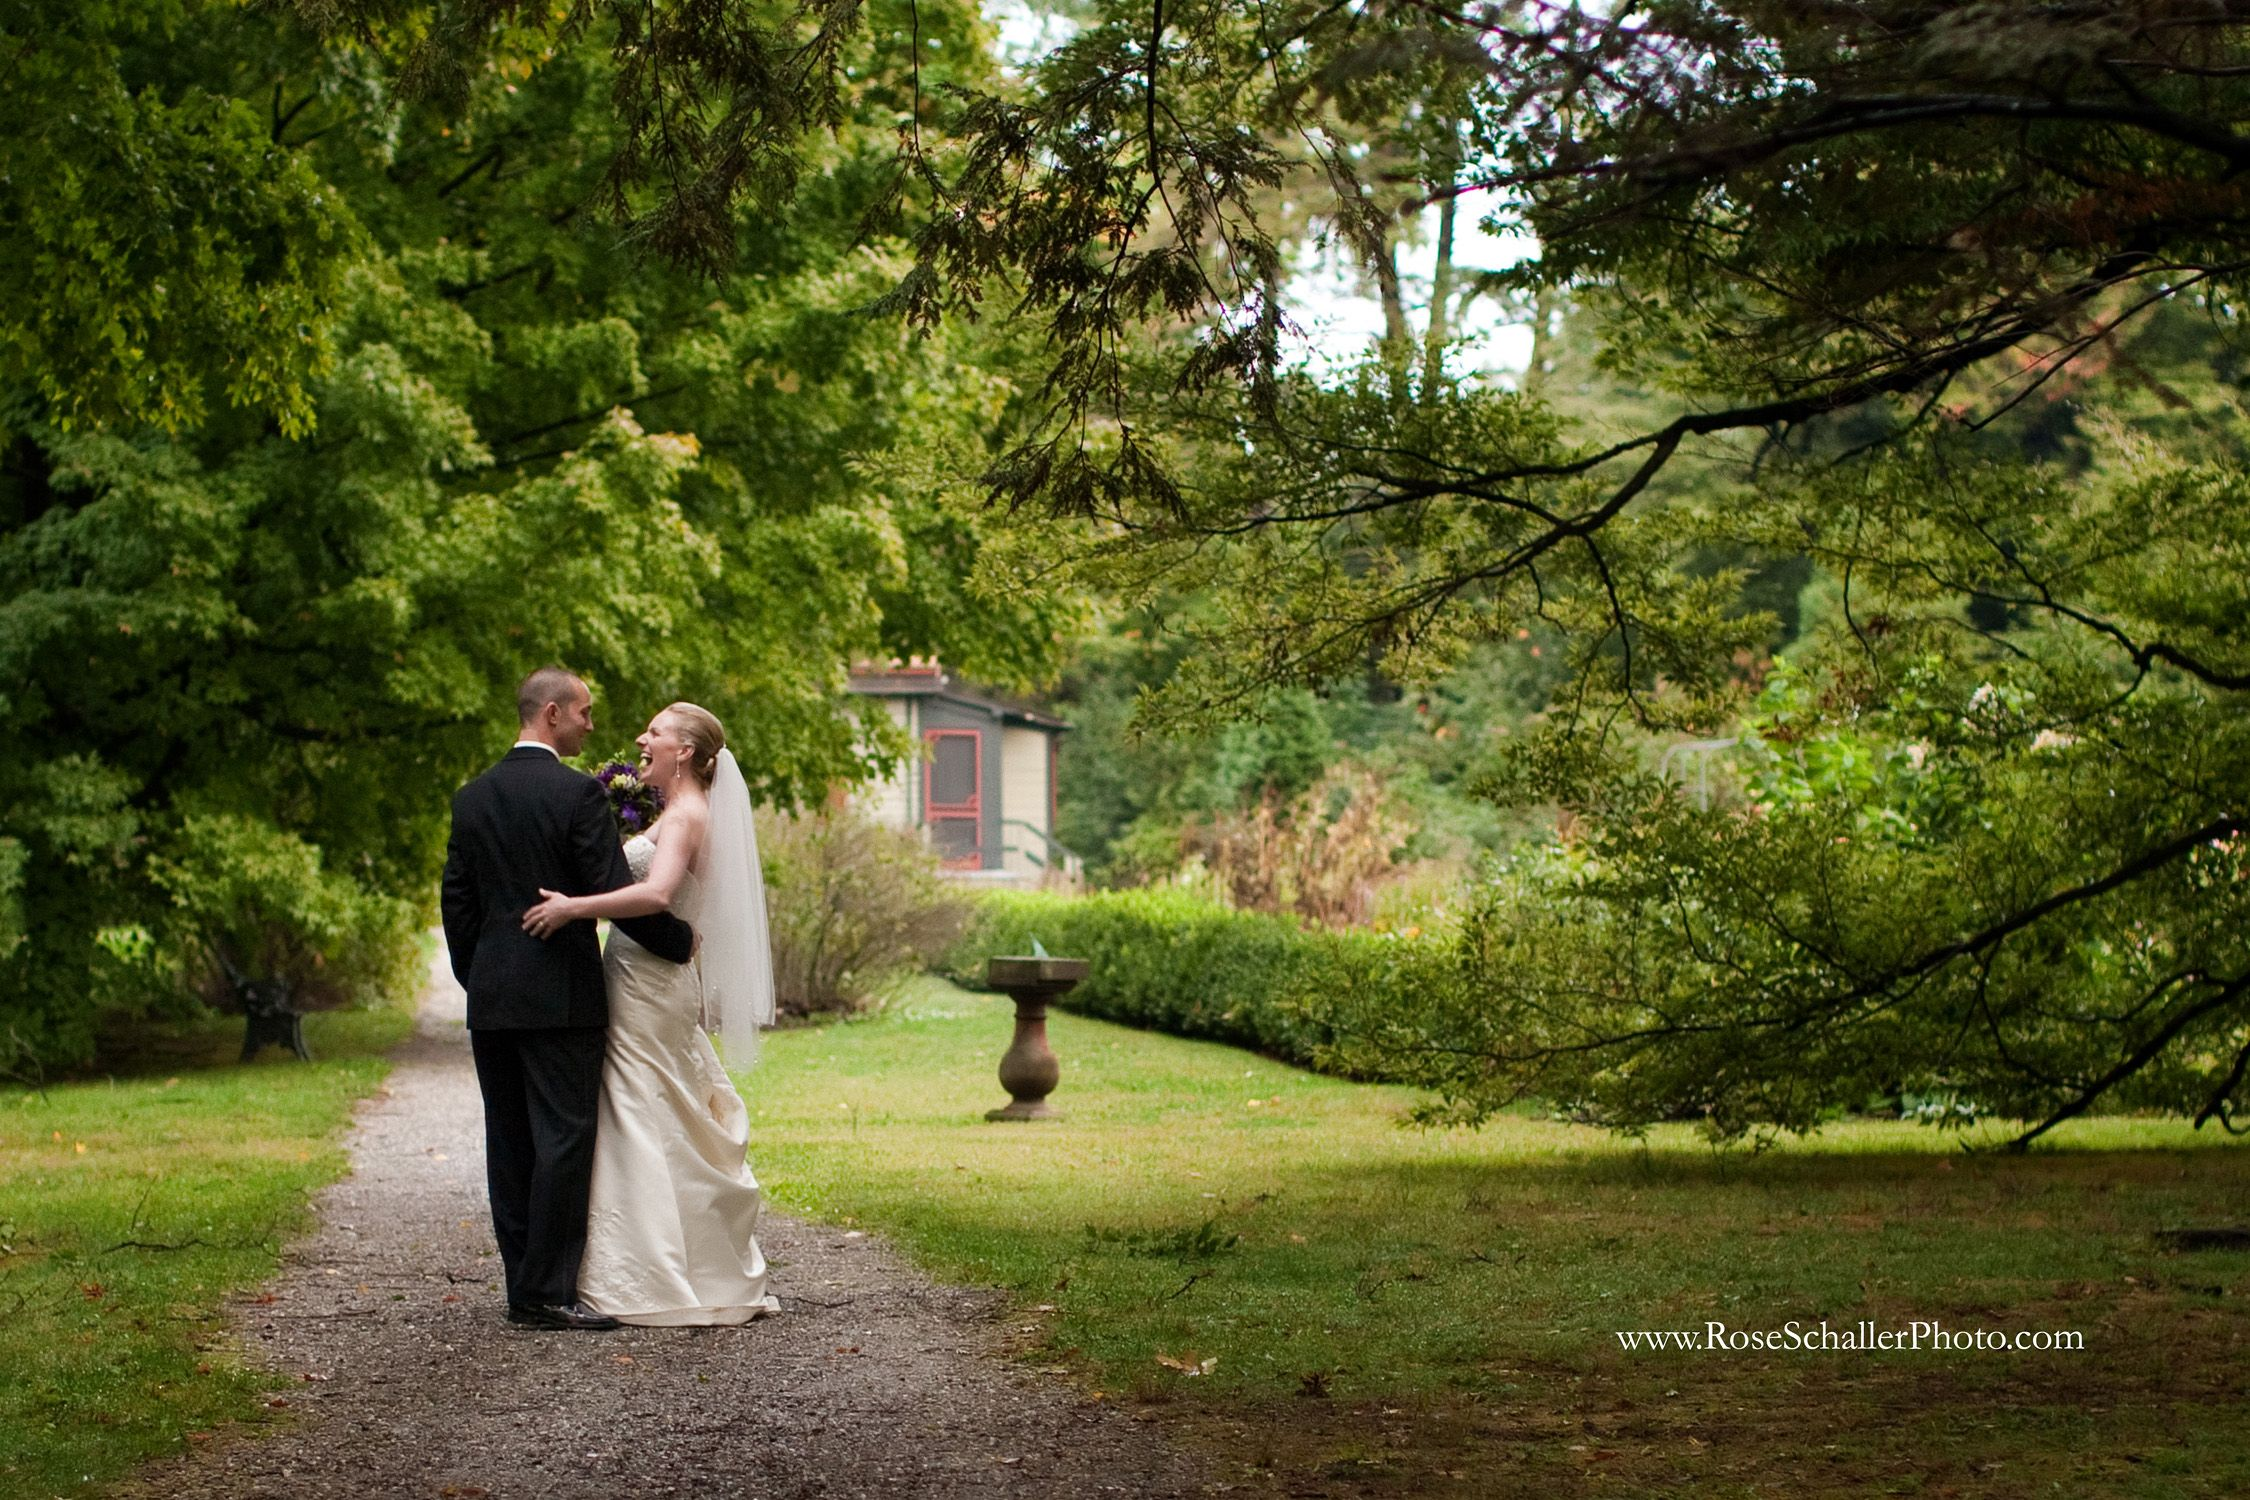 Wedding guests at the historic Locust Grove Estate can ...